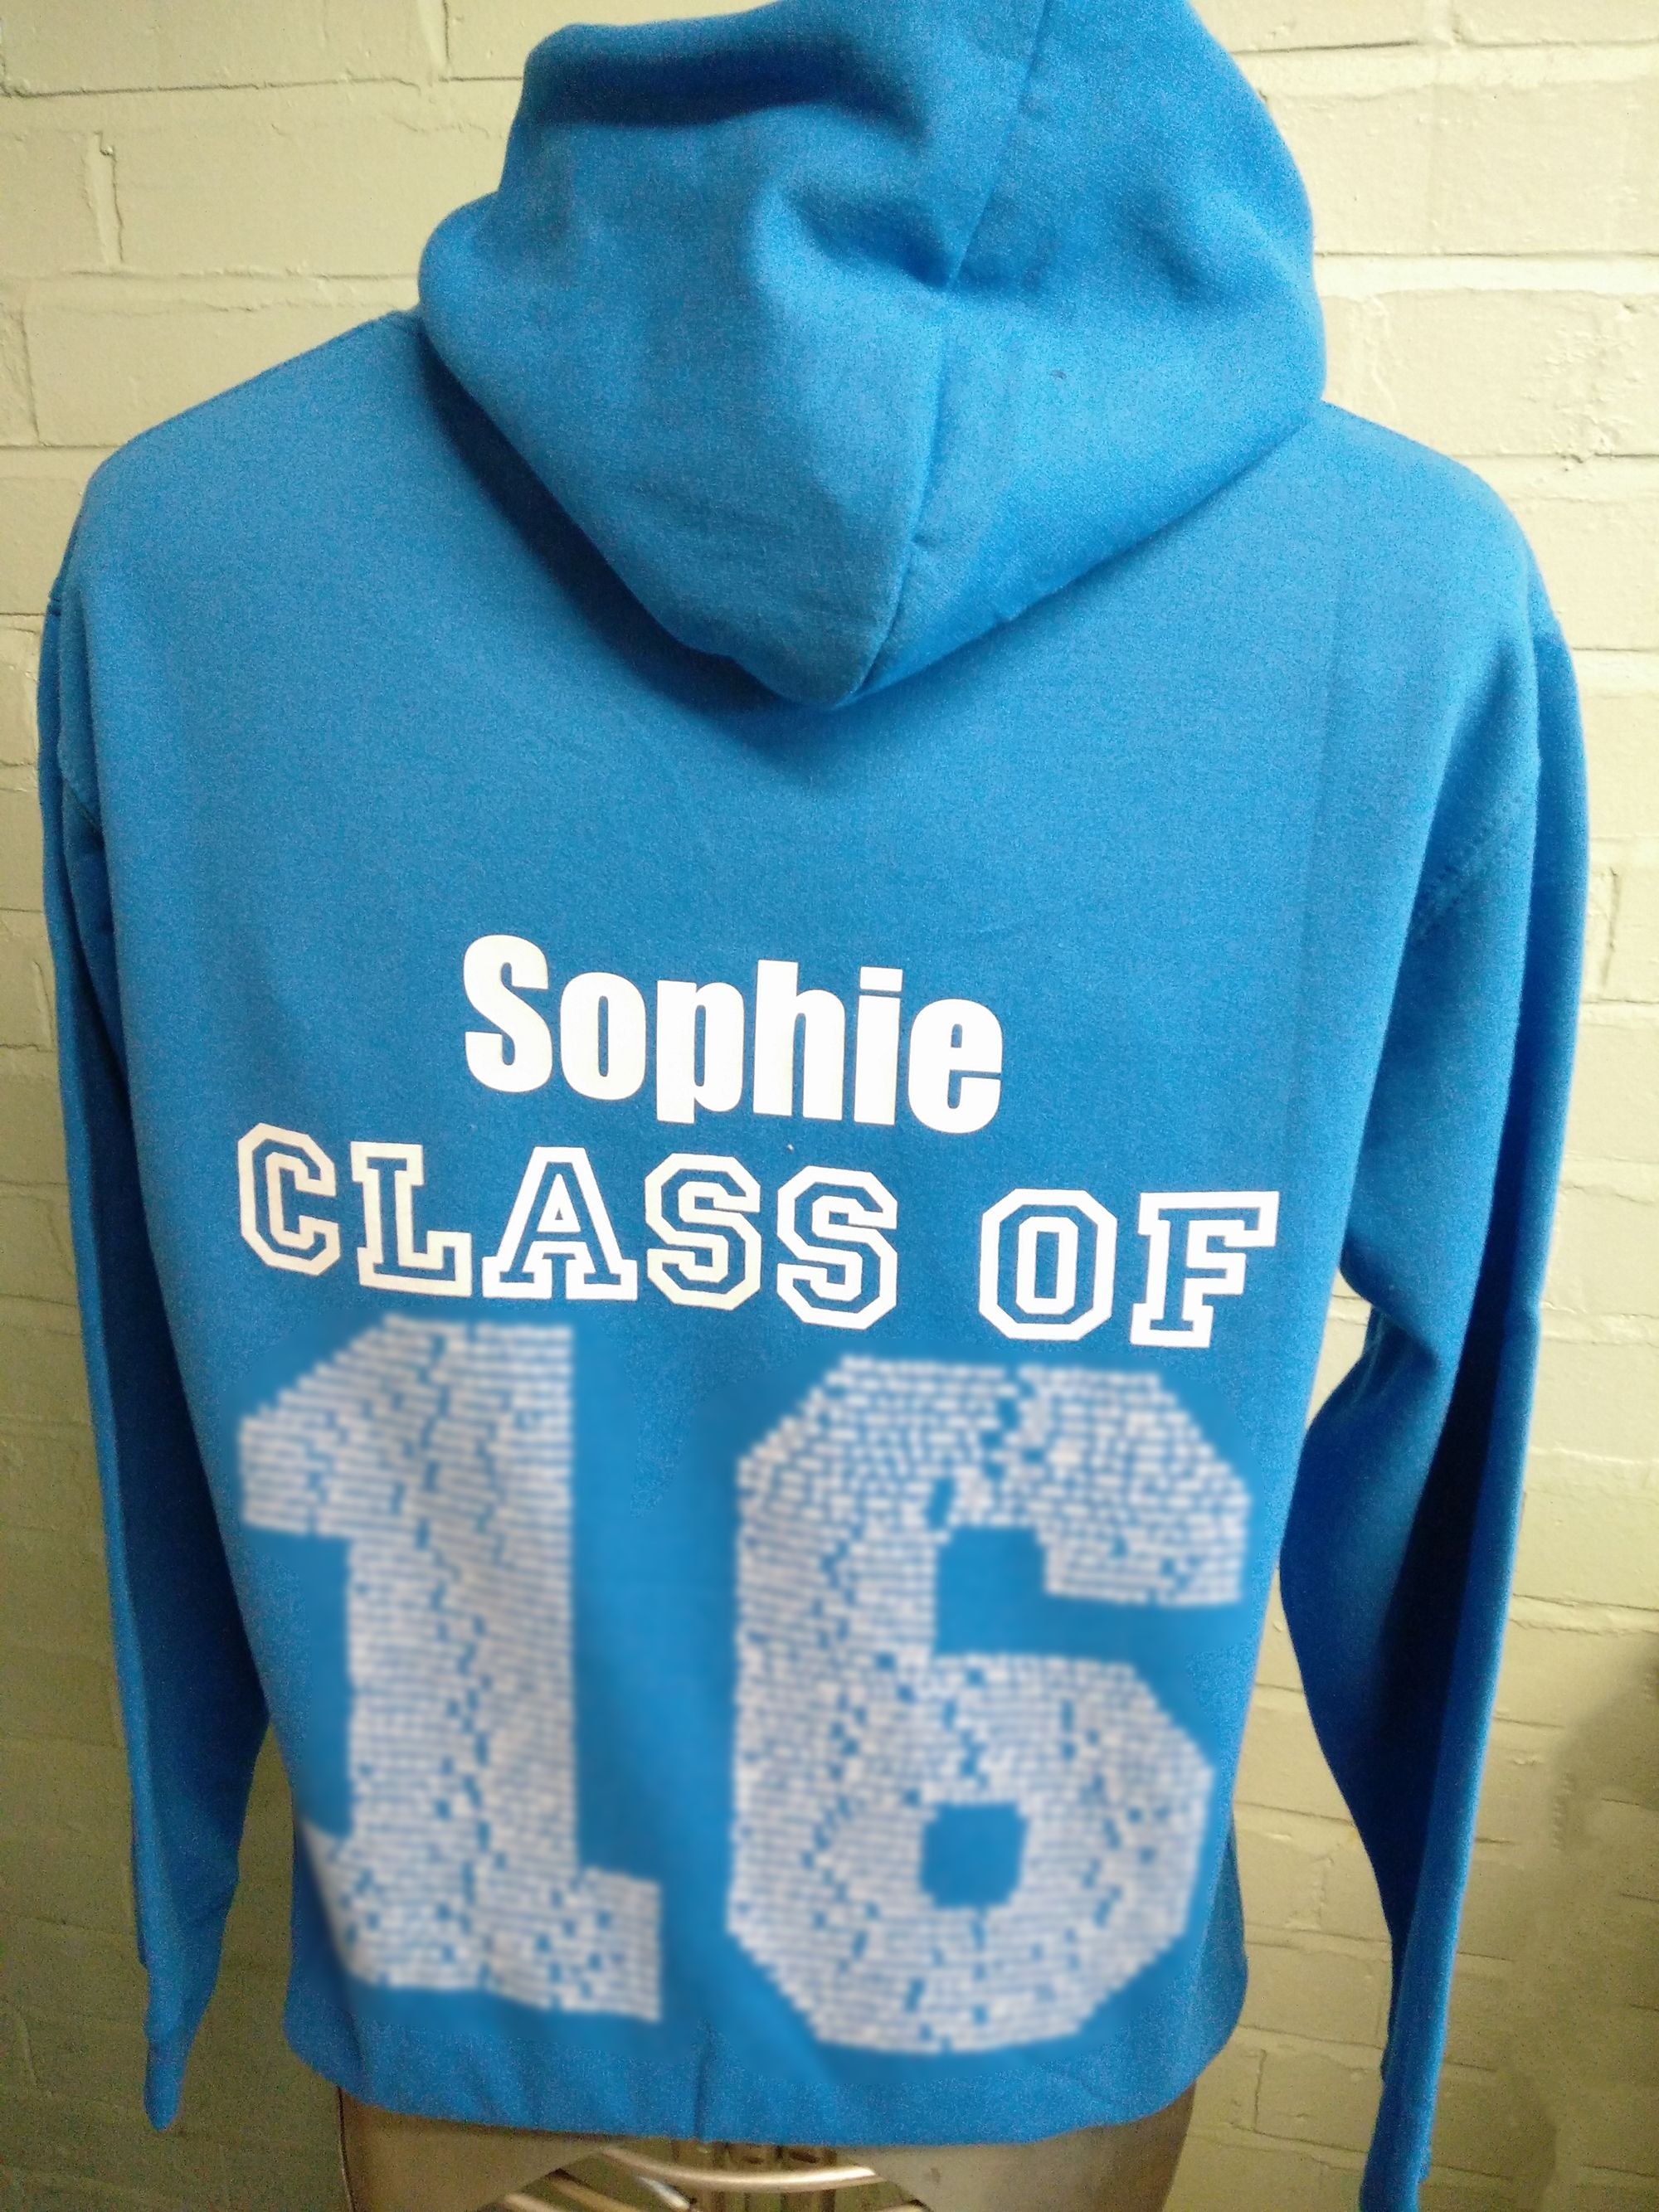 Blue Class of 2016 Hoodies looking good. With custom embroidered logo on the front and printed Leavers design on the back complete with names. Great to be working with these guys.